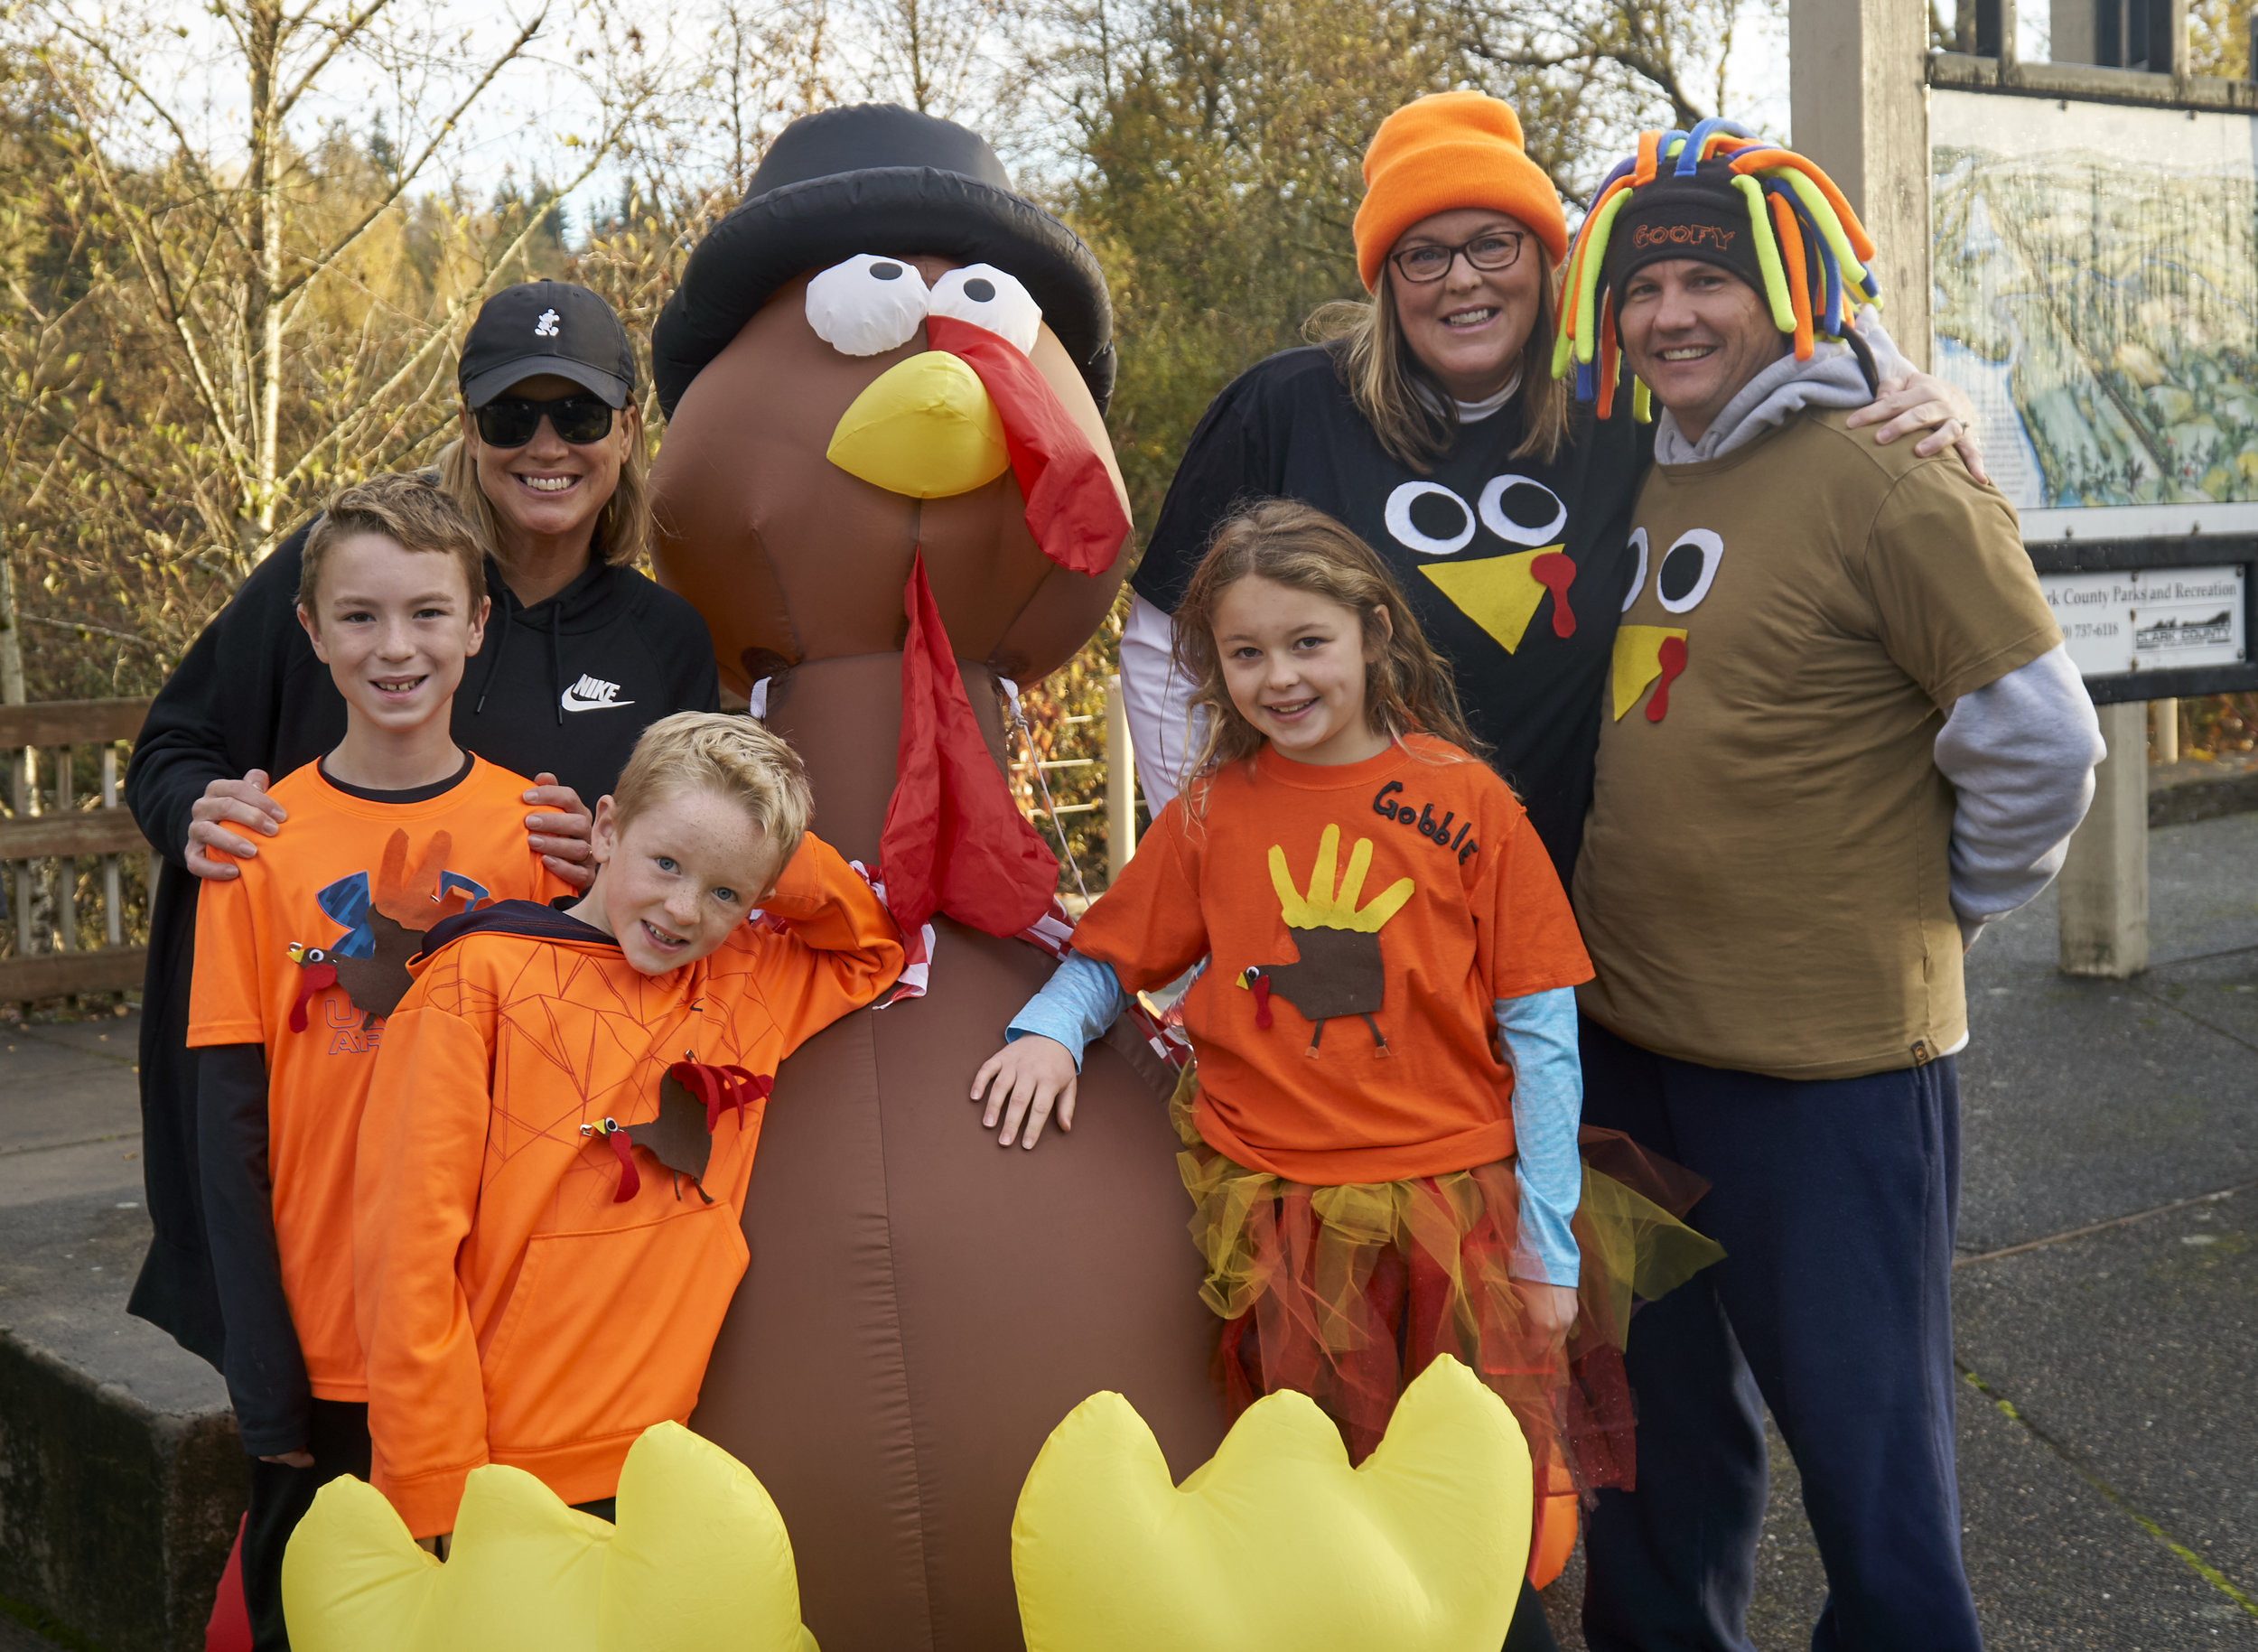 This year was Clark County Turkey Trot's 17th year. Over the past decade and a half Turkey Trot has become a family tradition for thousands of community members.